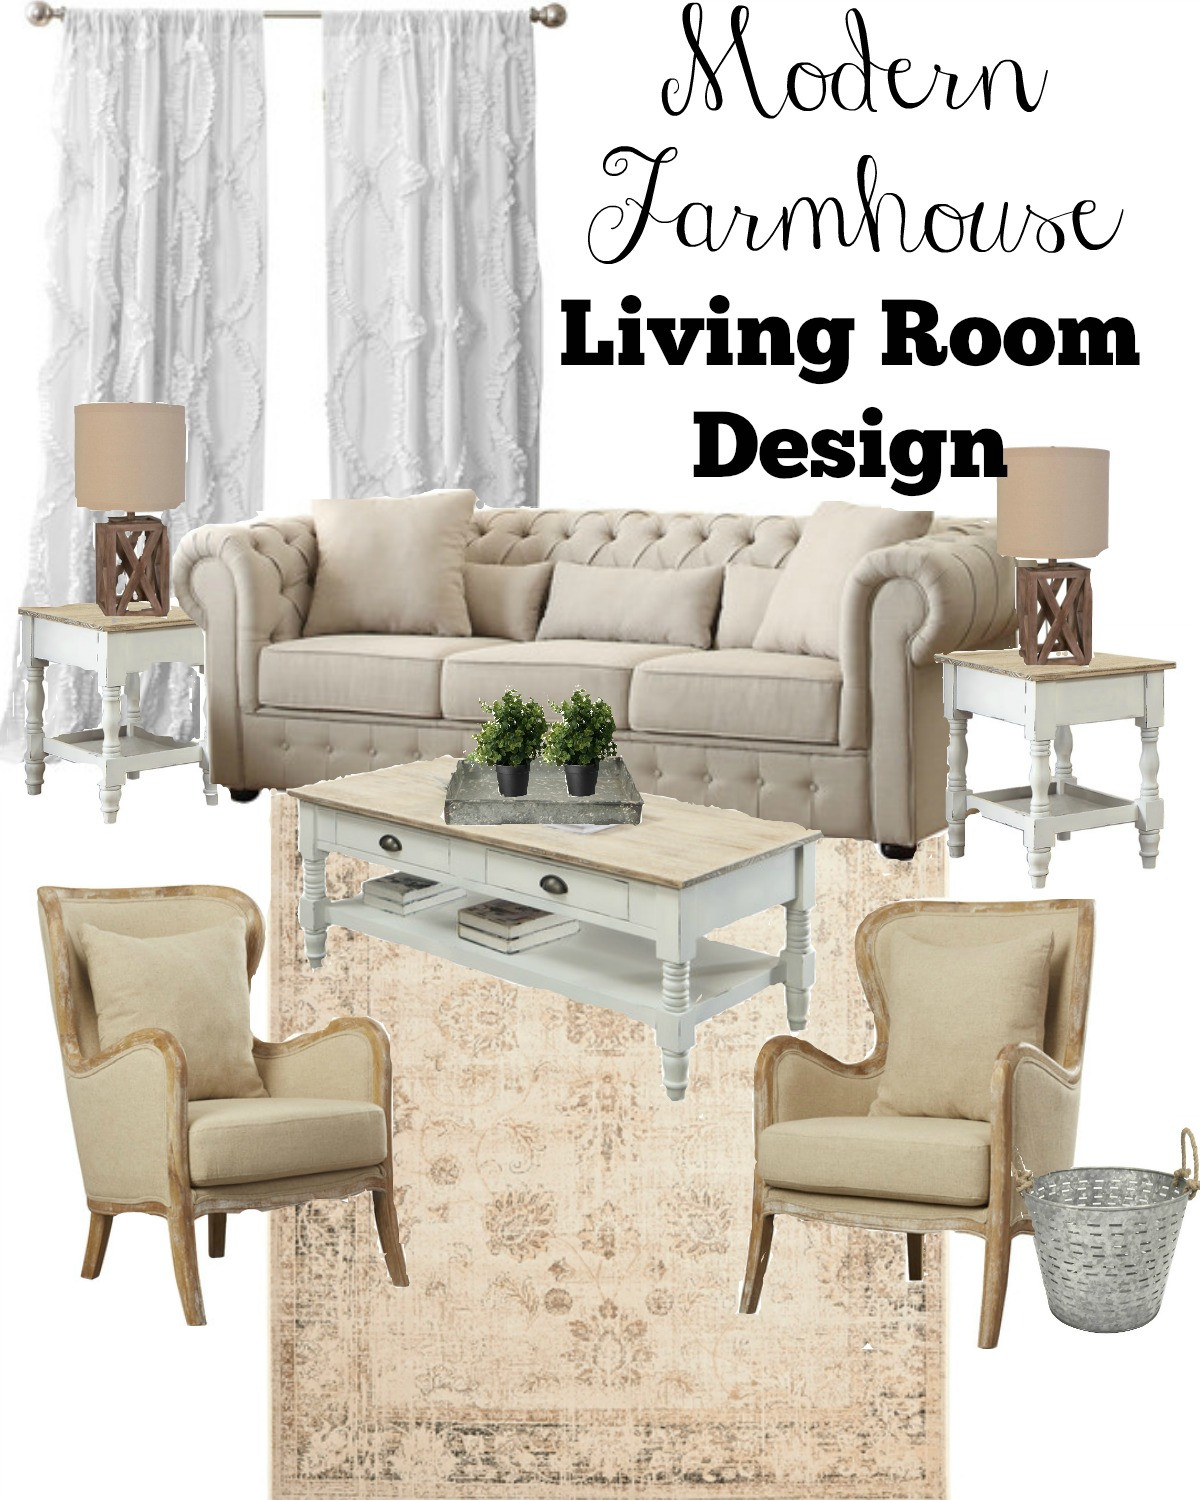 Best ideas about Farmhouse Style Living Room Furniture . Save or Pin 3 Key Tips for a Farmhouse Style Living Room Now.